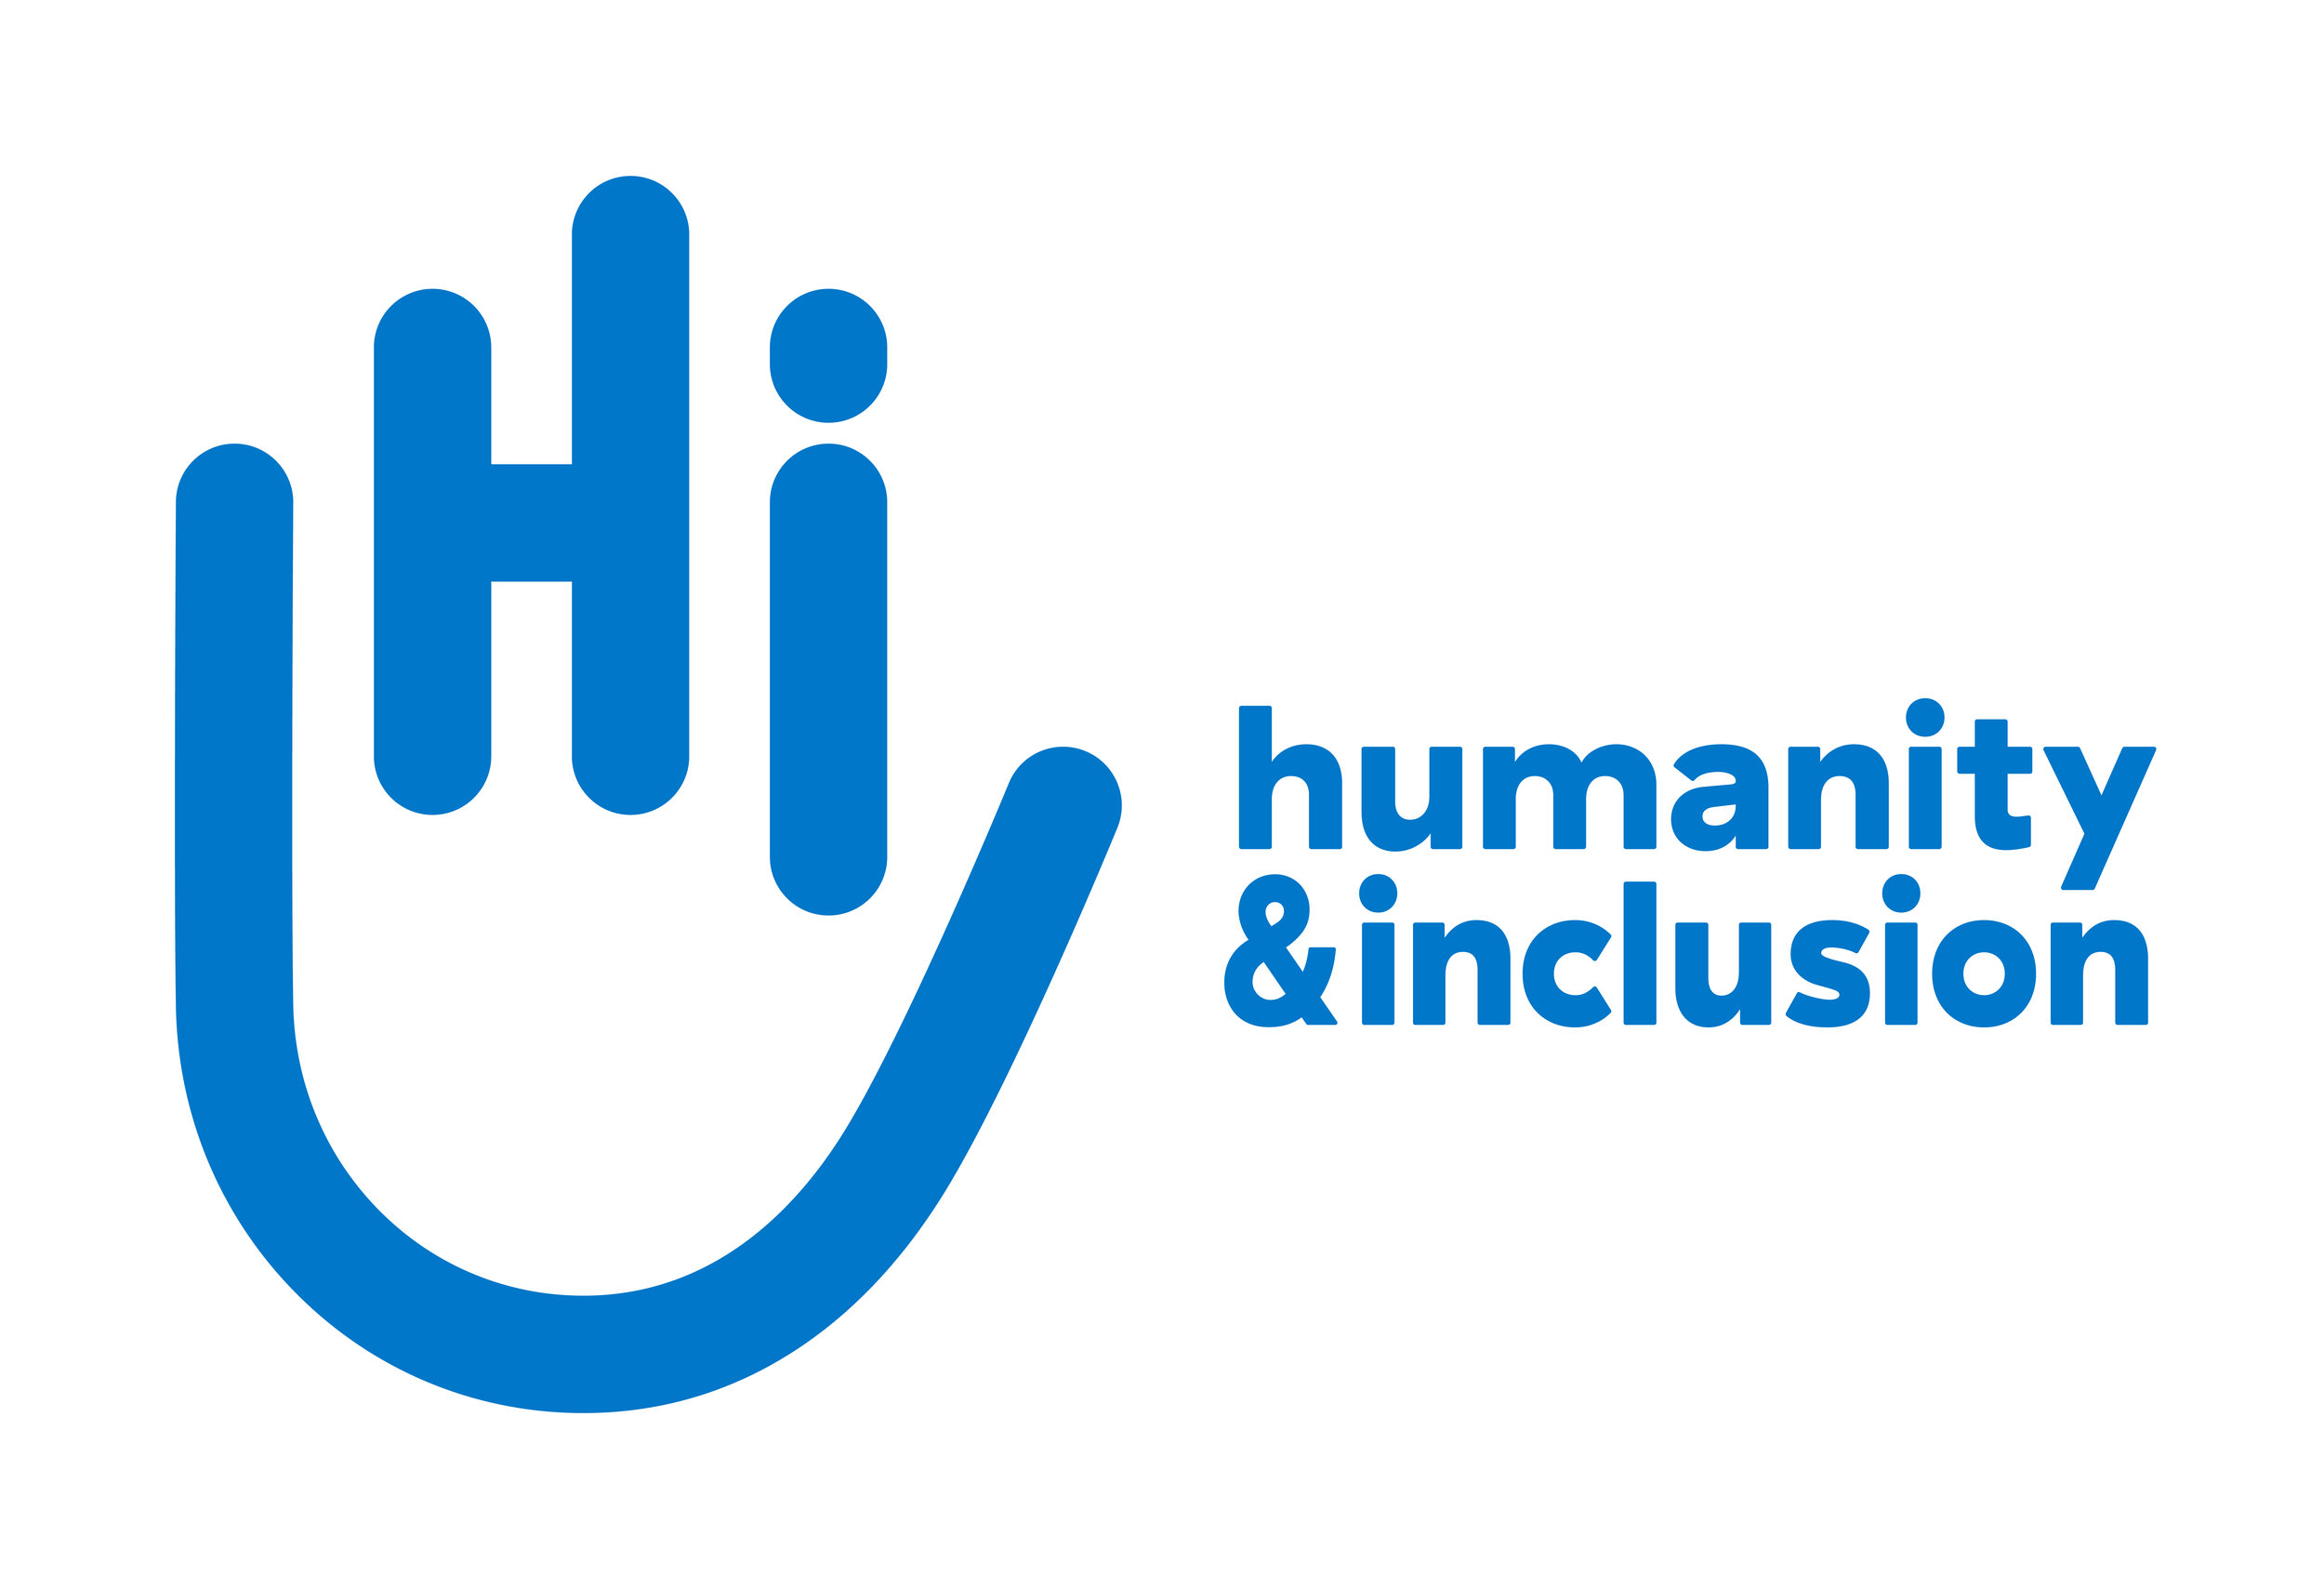 Humanity and inclusion